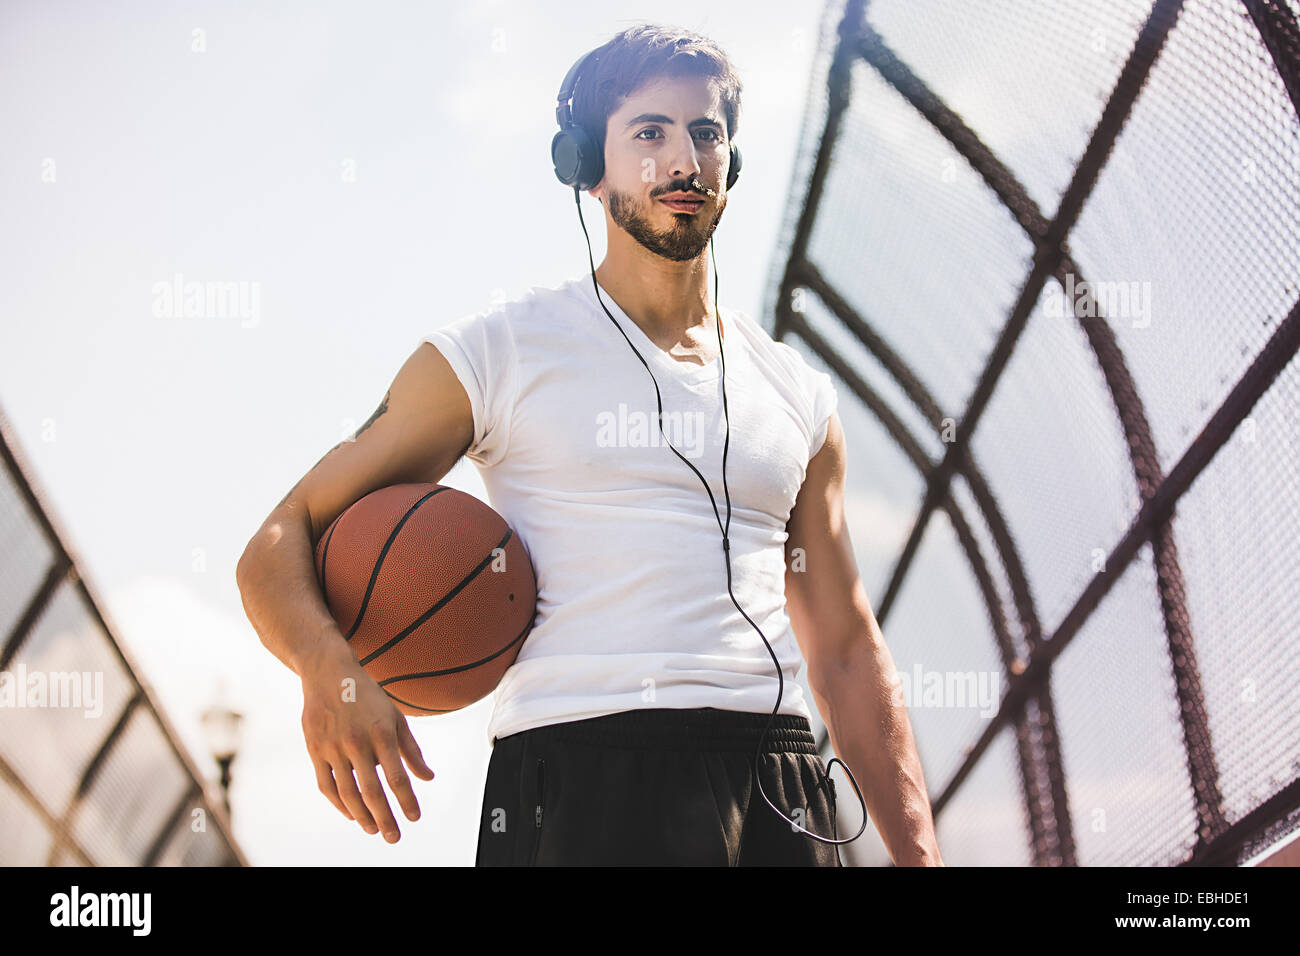 Young male basketball player walking along footbridge listening to headphones - Stock Image